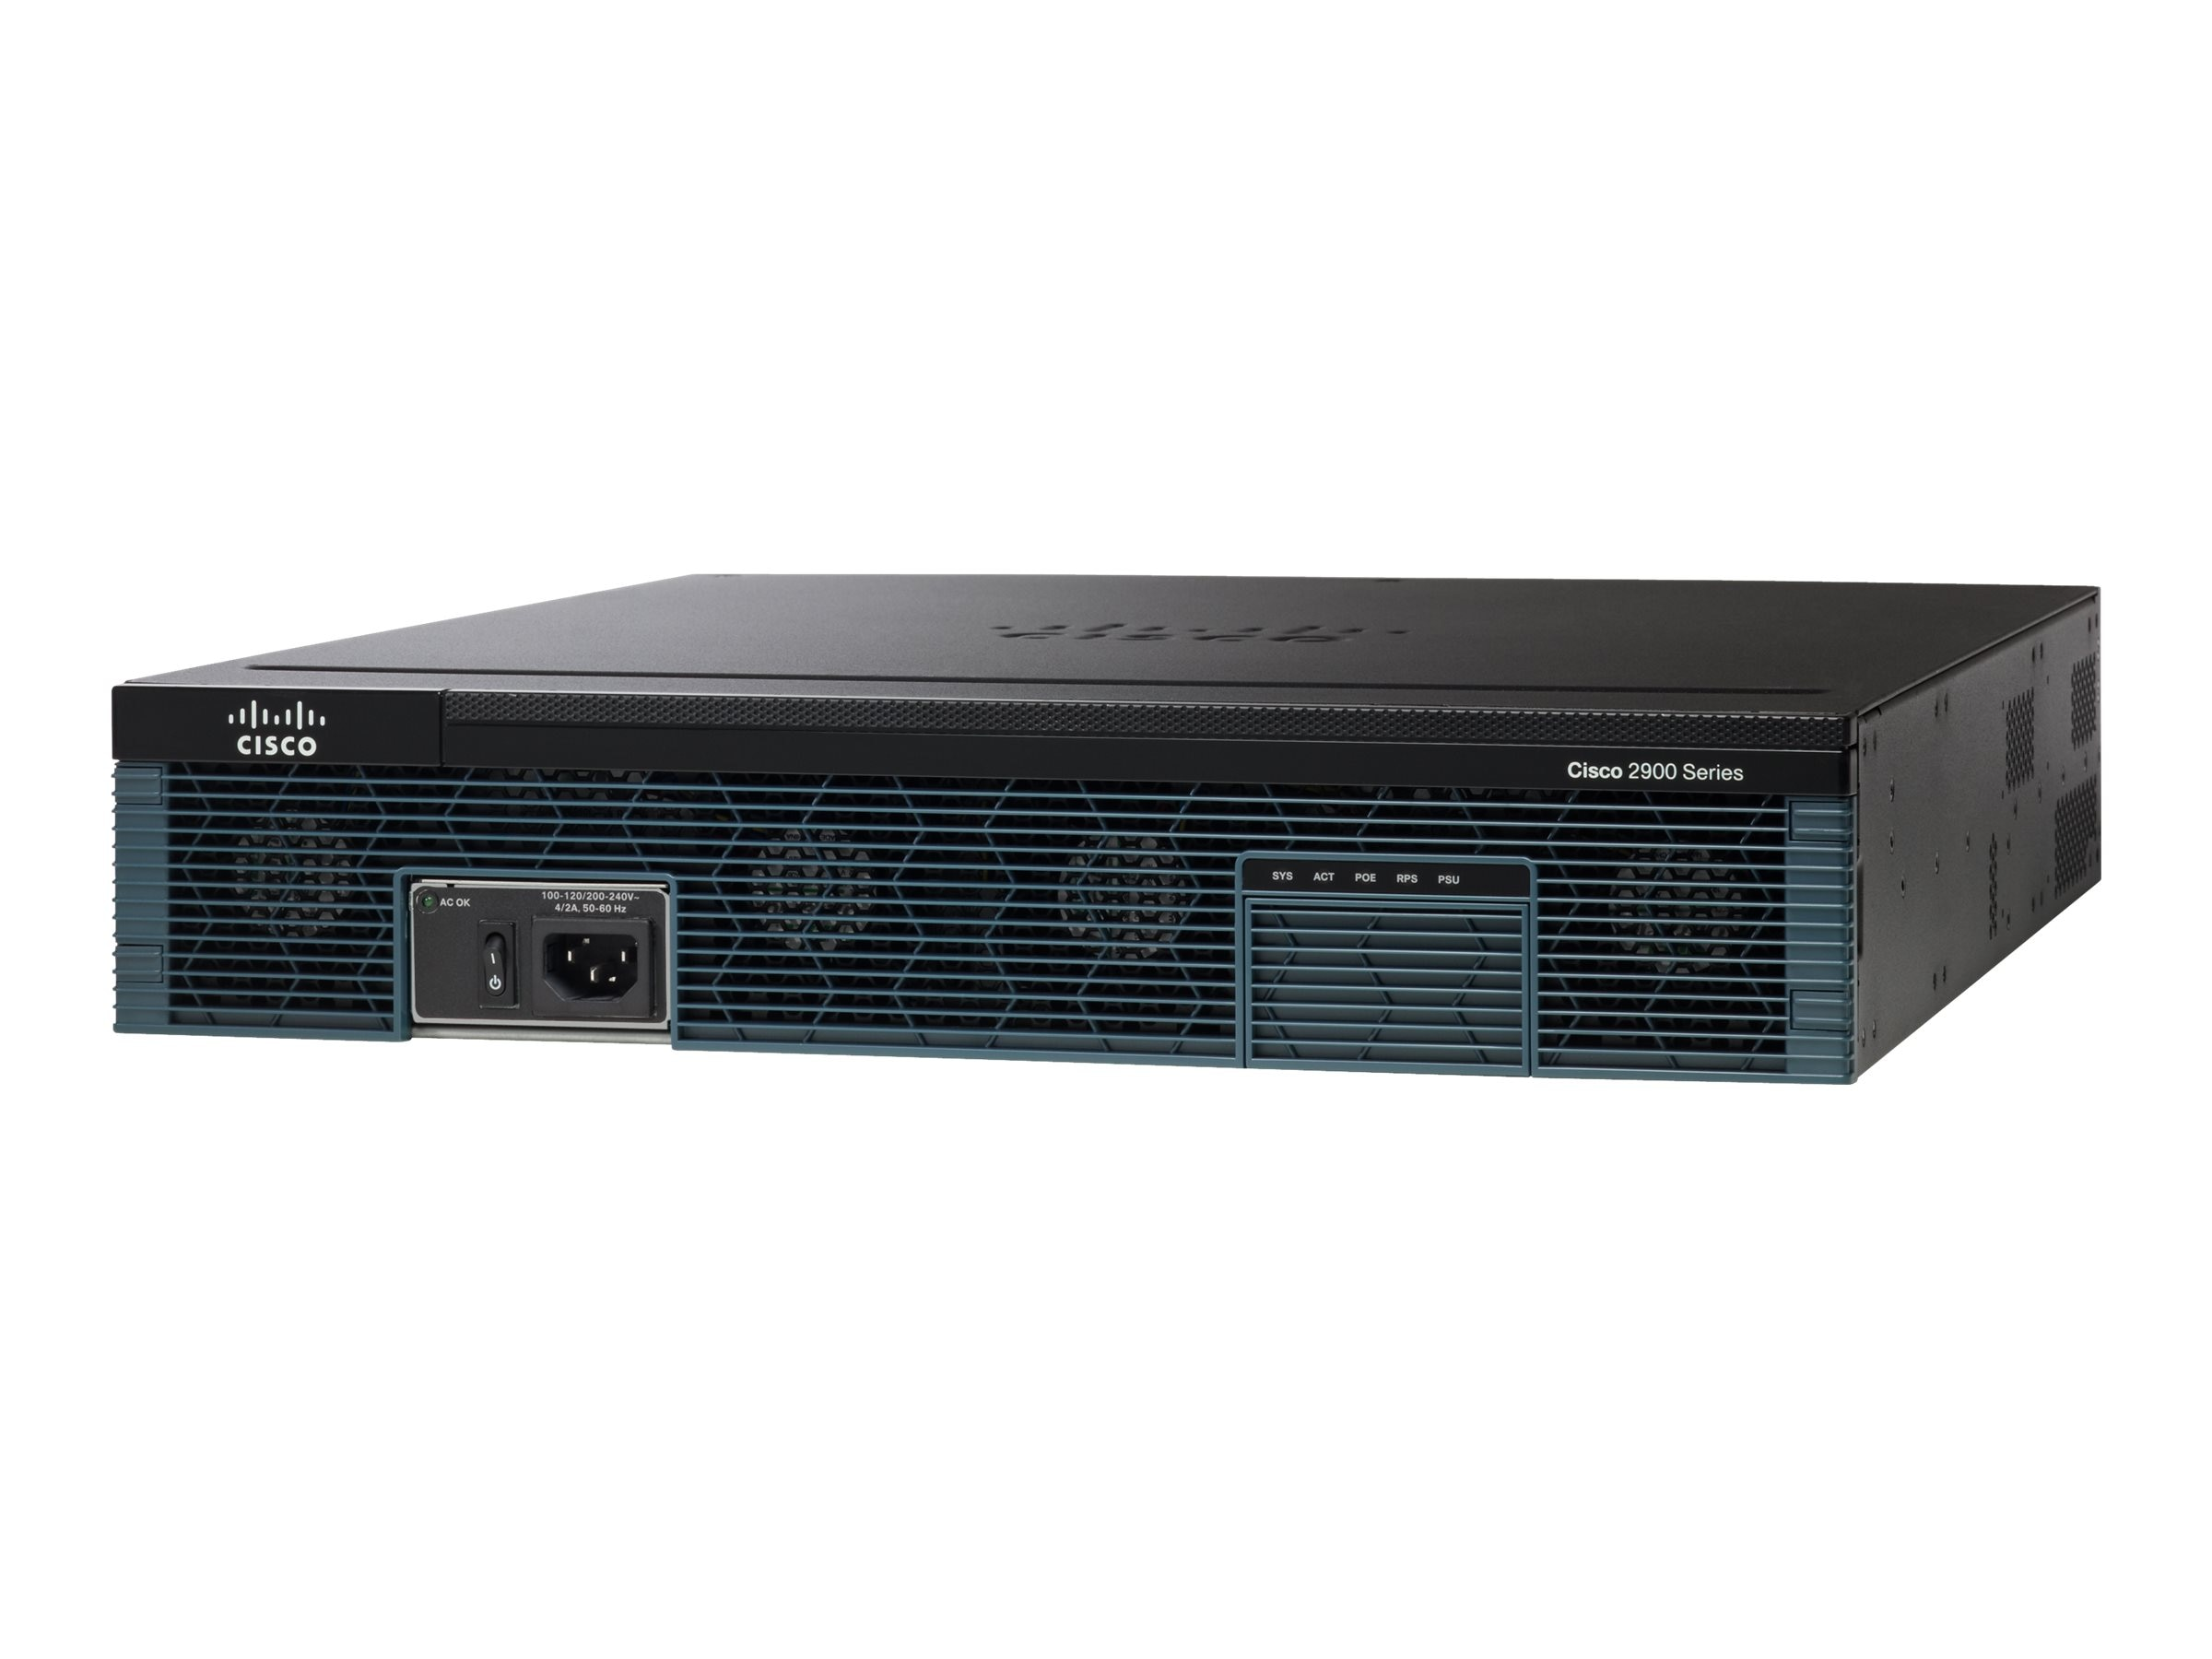 Cisco 2951 SRE 900 SEC PAK WAAS Enterprise License Large, C2951-WAAS-SEC/K9, 16334312, Network Voice Routers